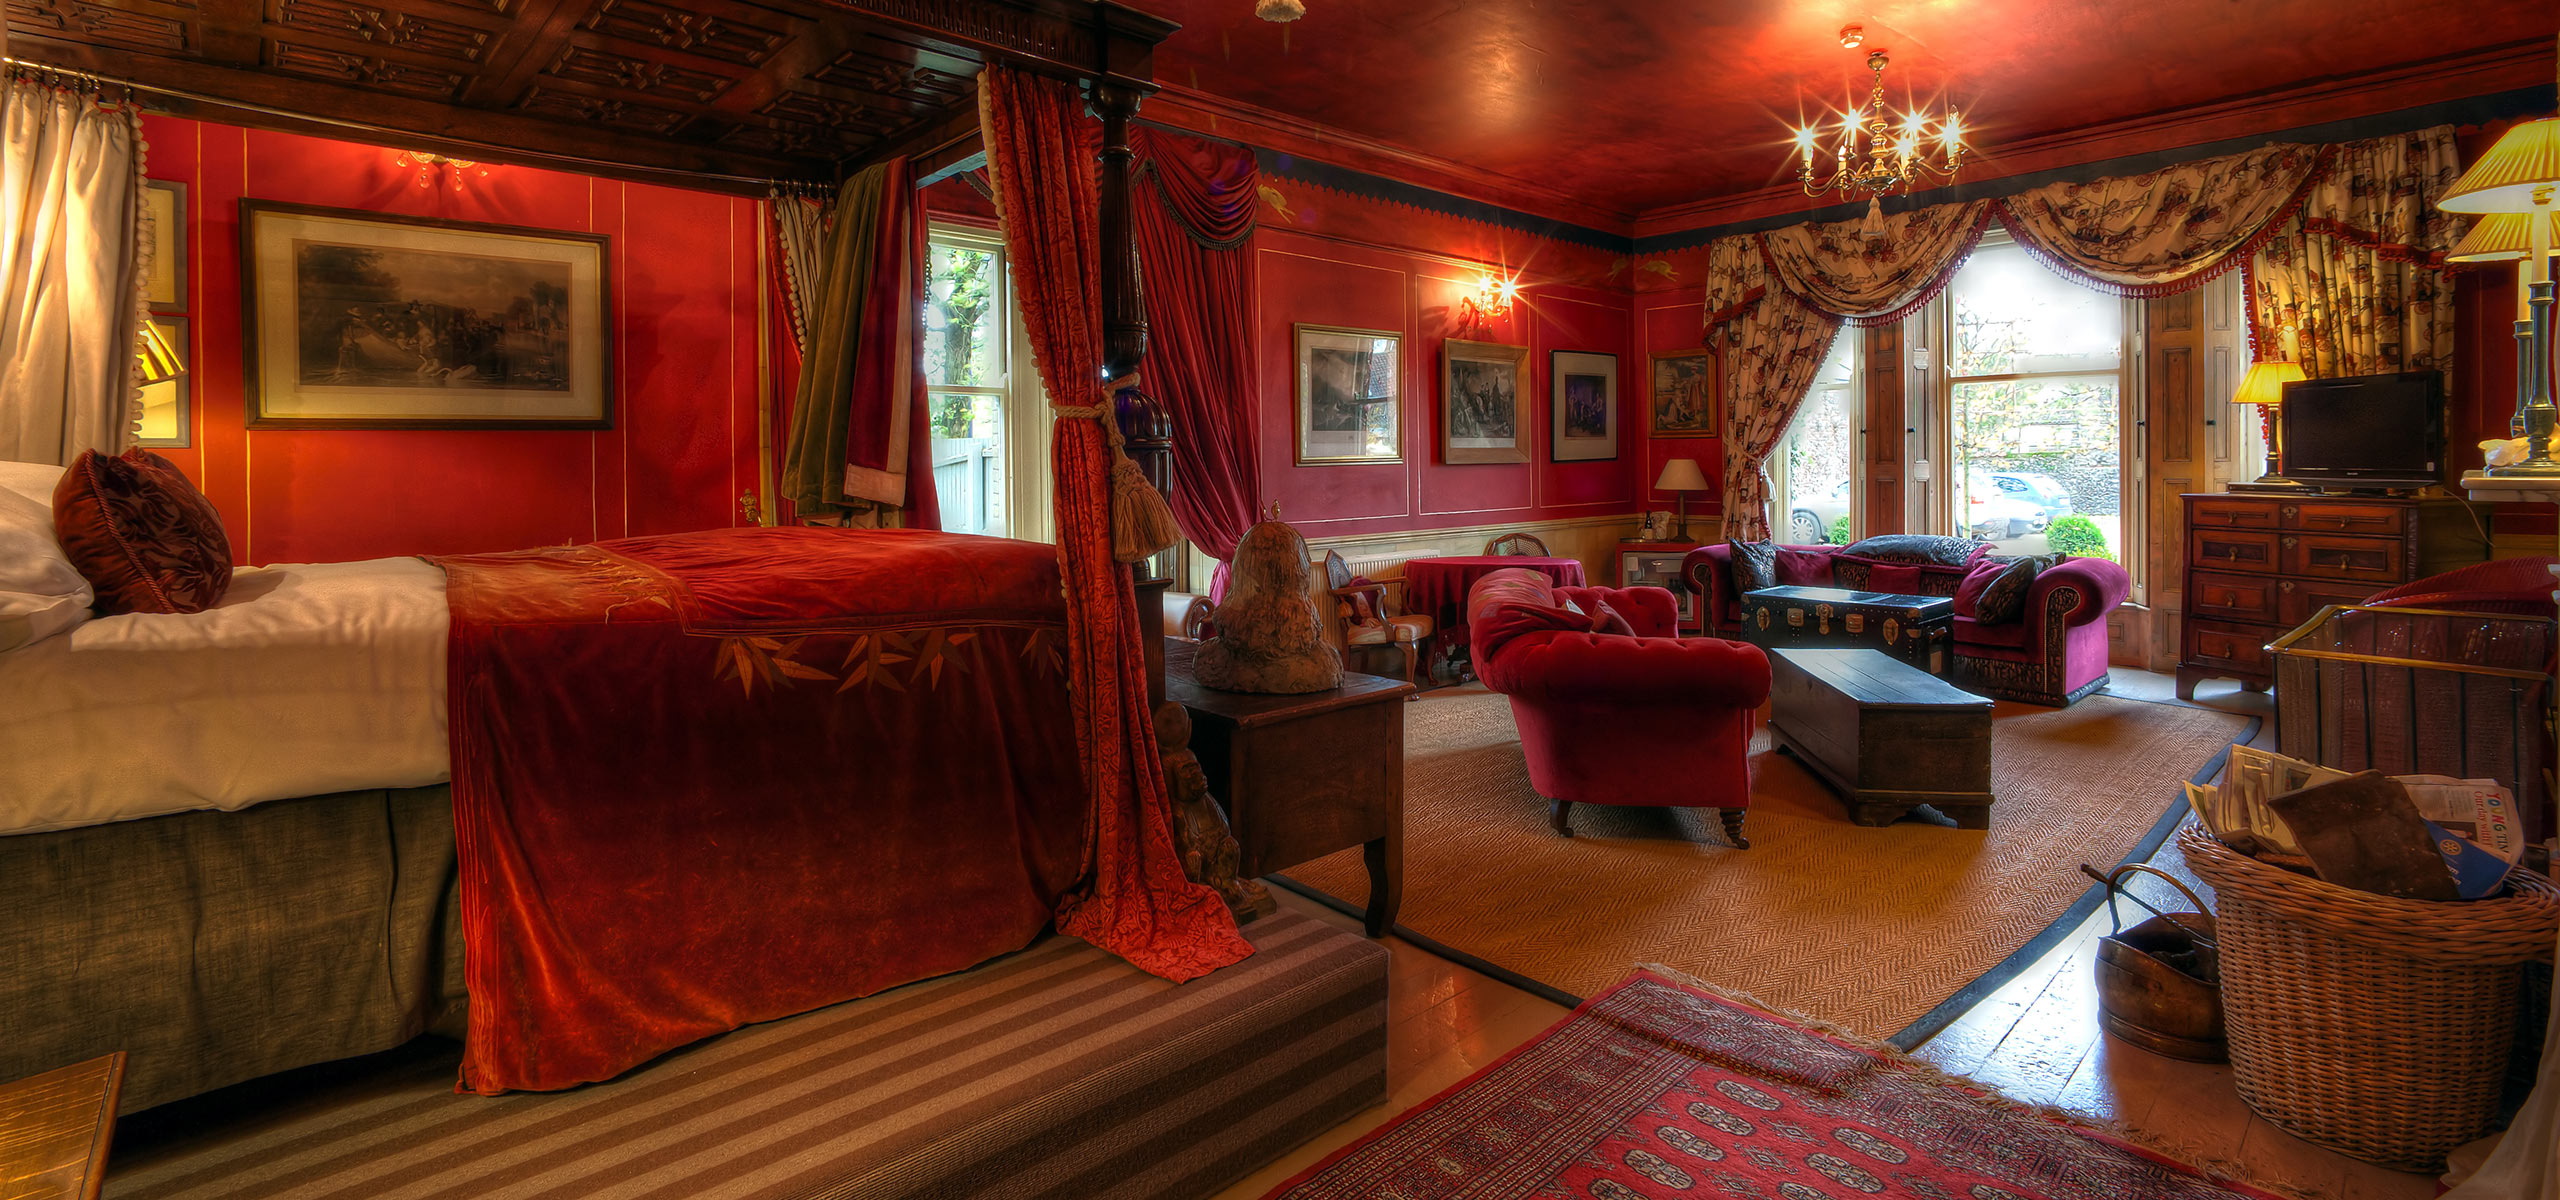 A Sofa Bed Red Room | Strattons Hotel, Luxury Boutique Hotel